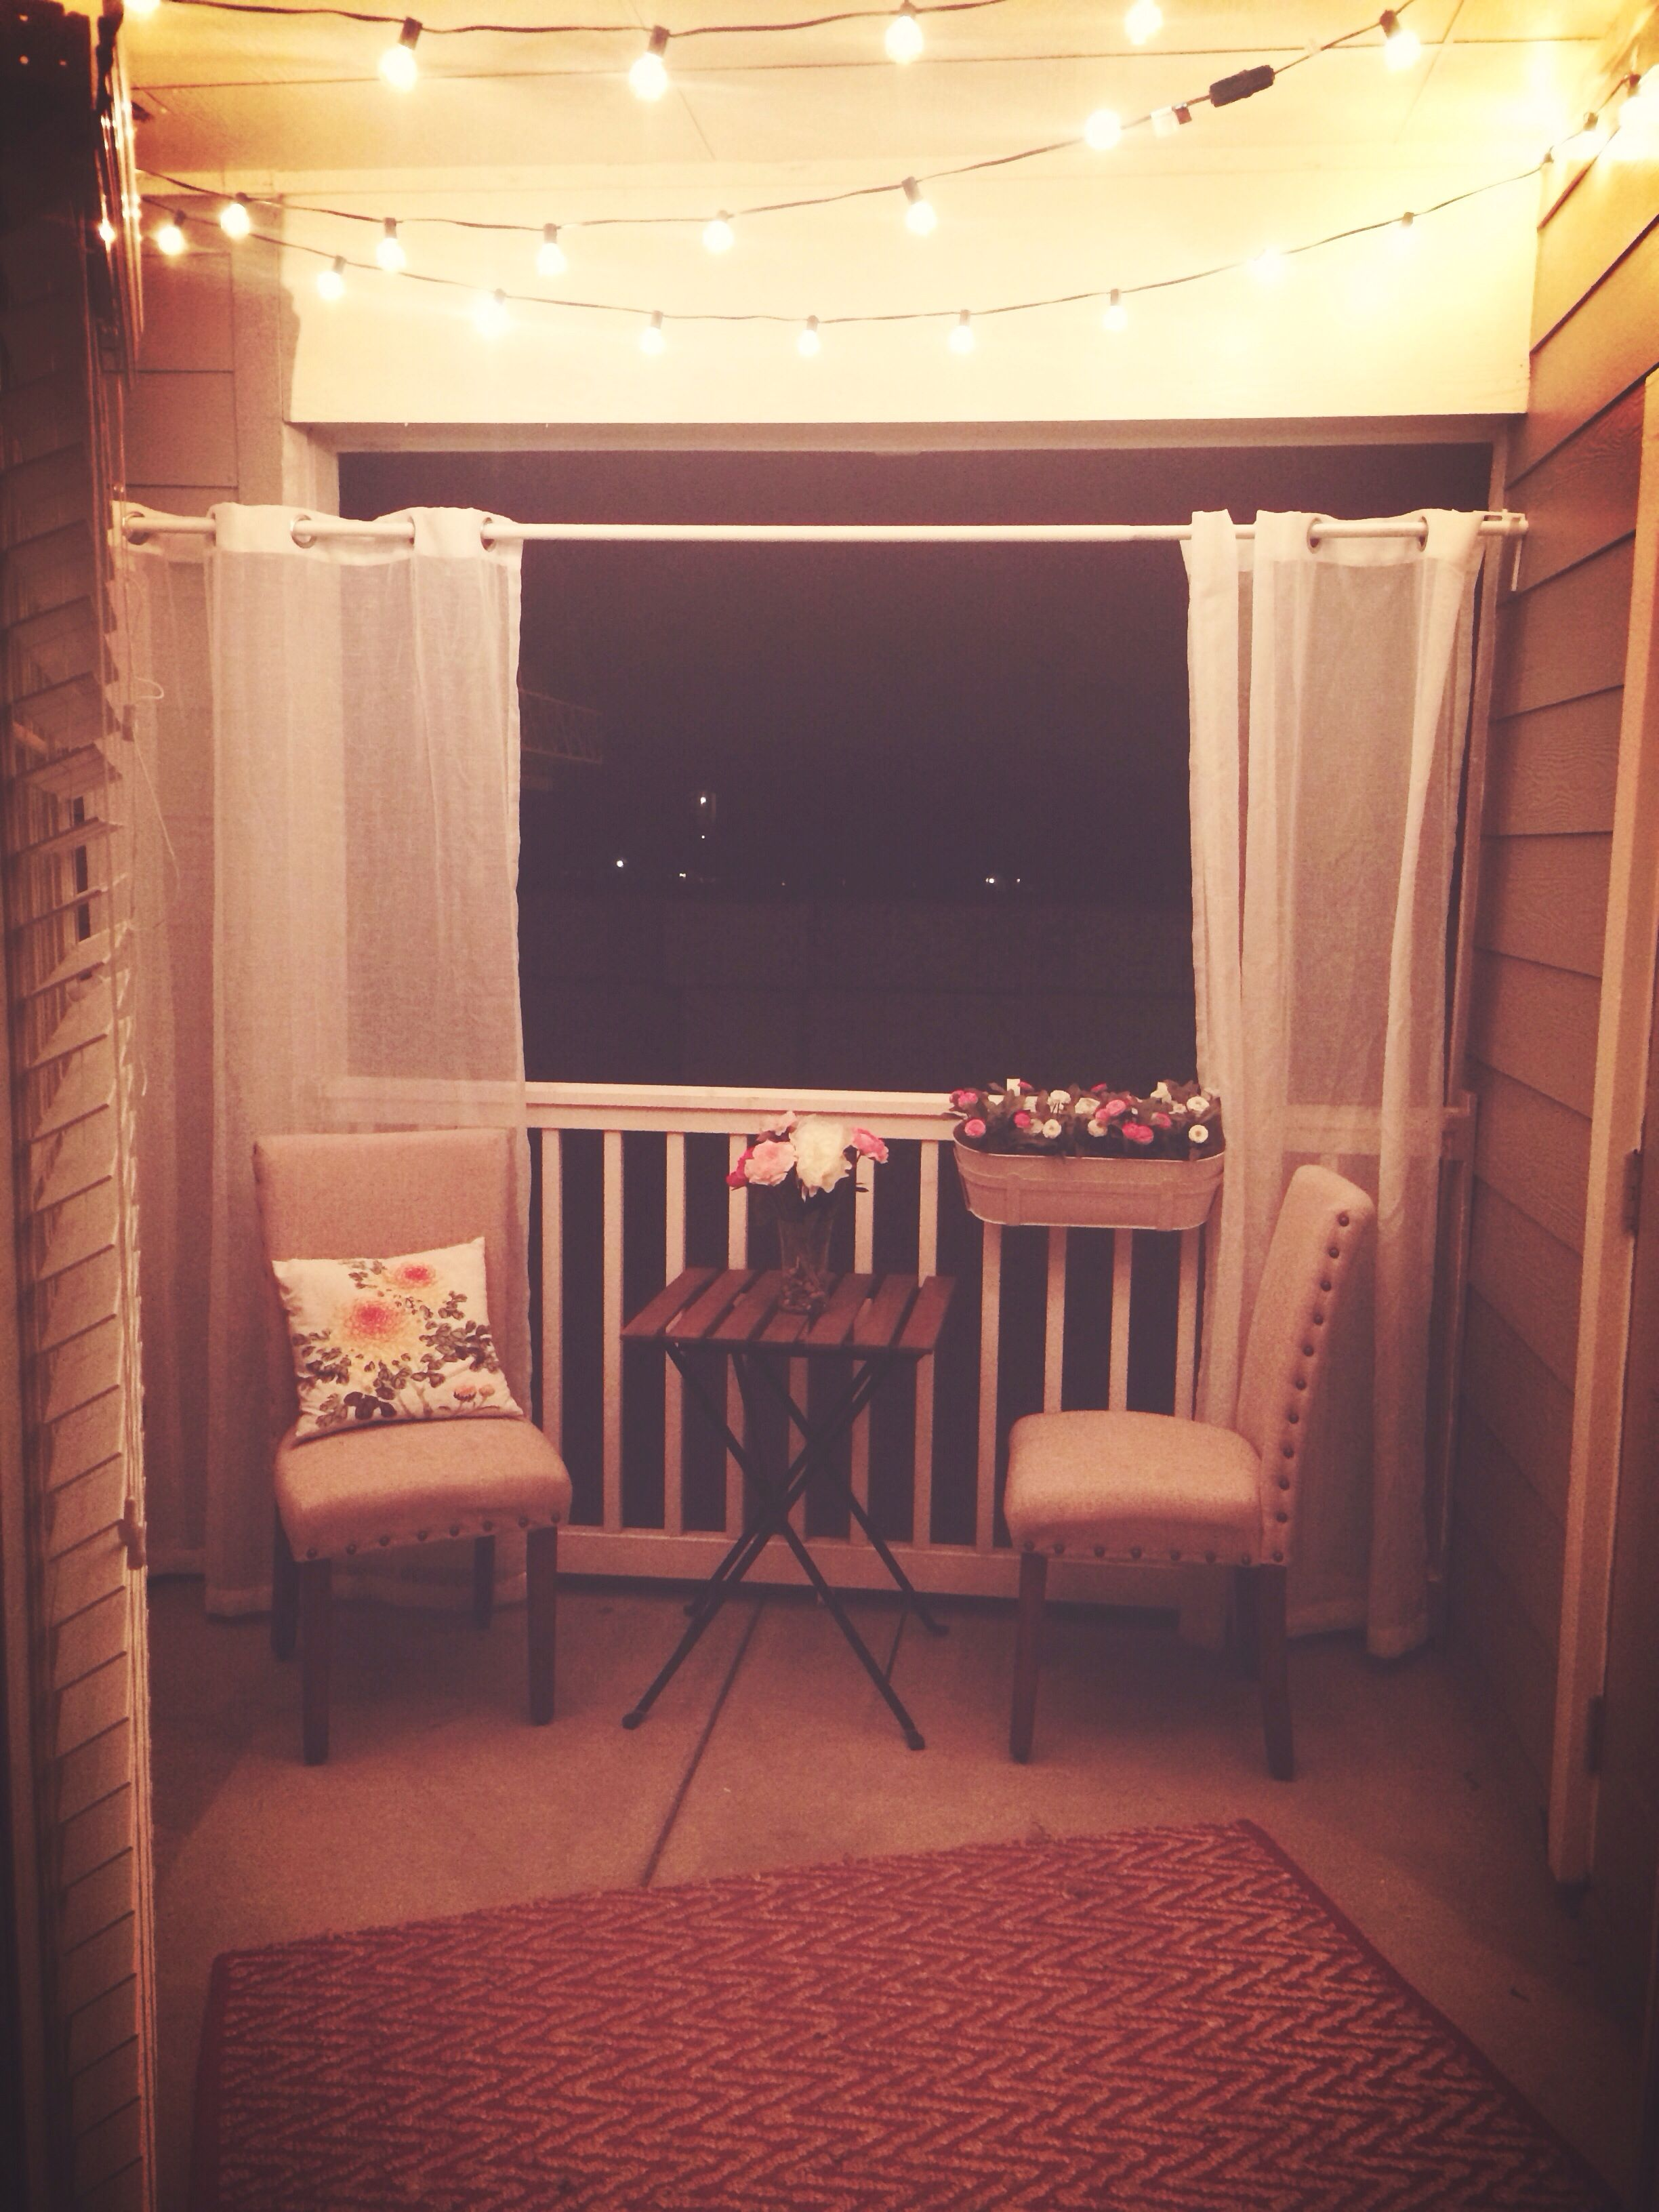 Balcony Lighting Ideas Small Apartment Patio With Lights Strung At Night